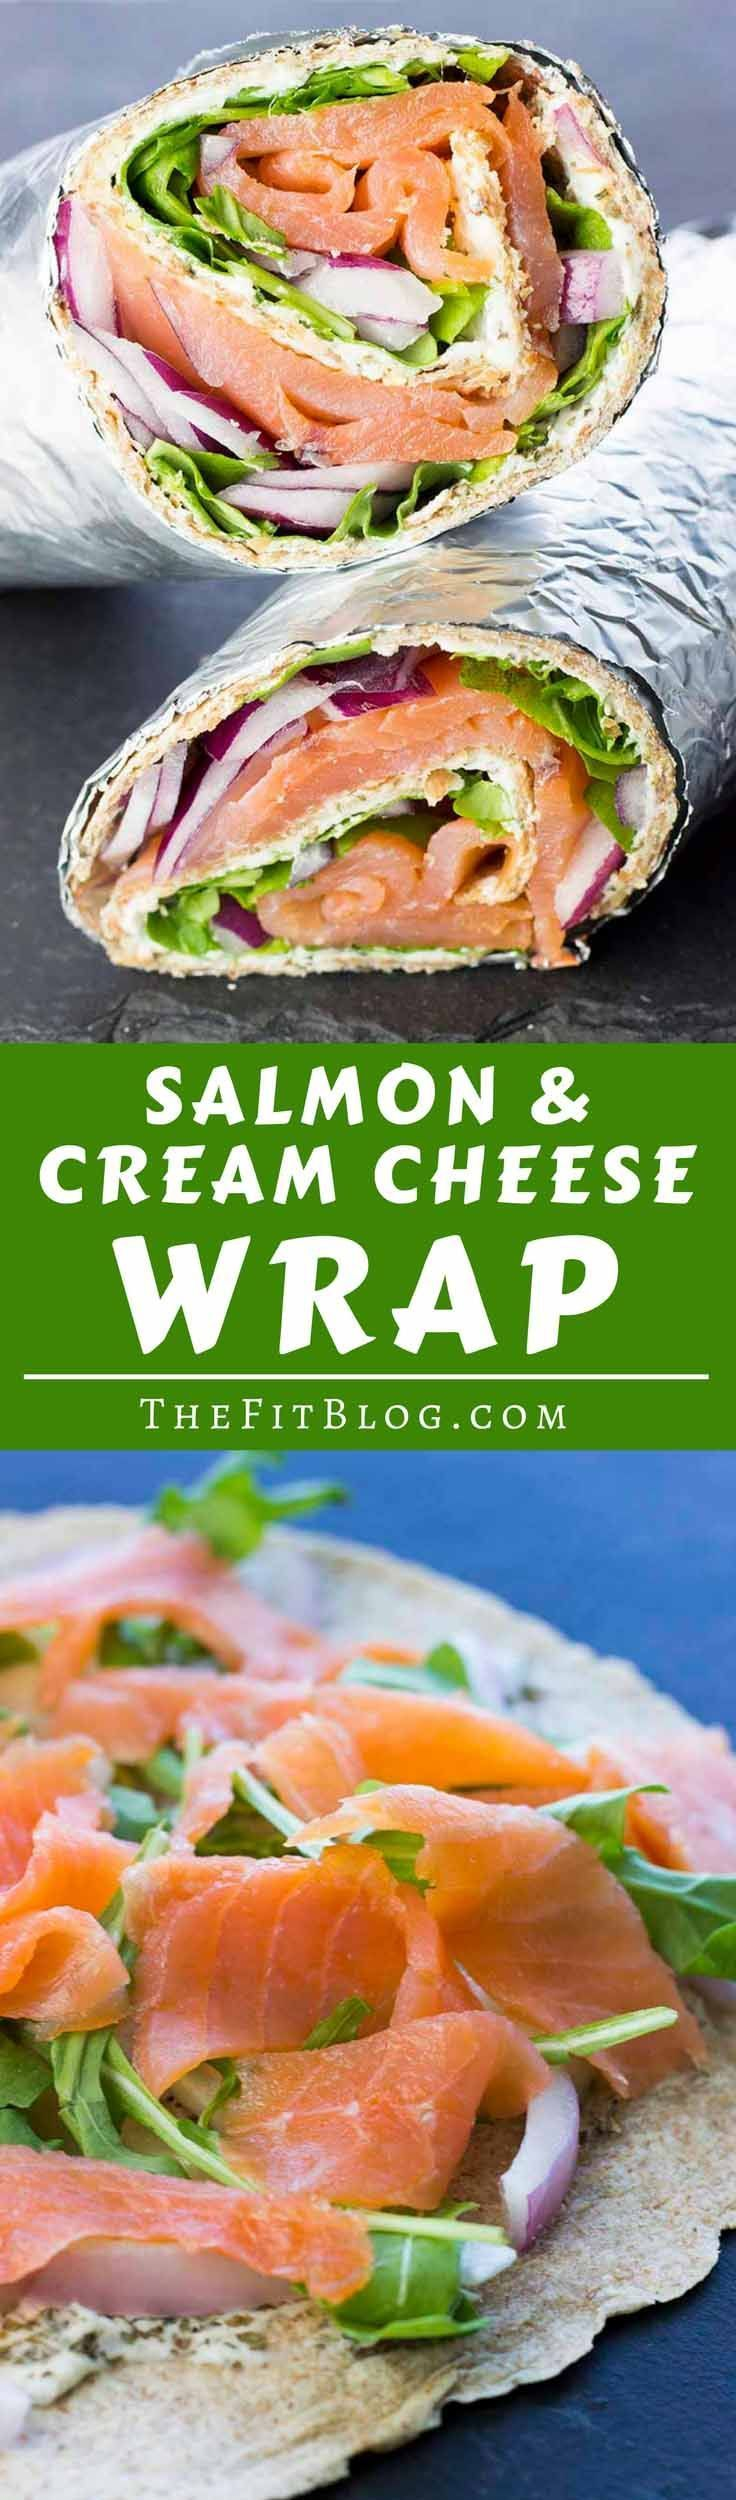 Smoked Salmon Sandwich on Pinterest | Salmon sandwich, Smoked salmon ...